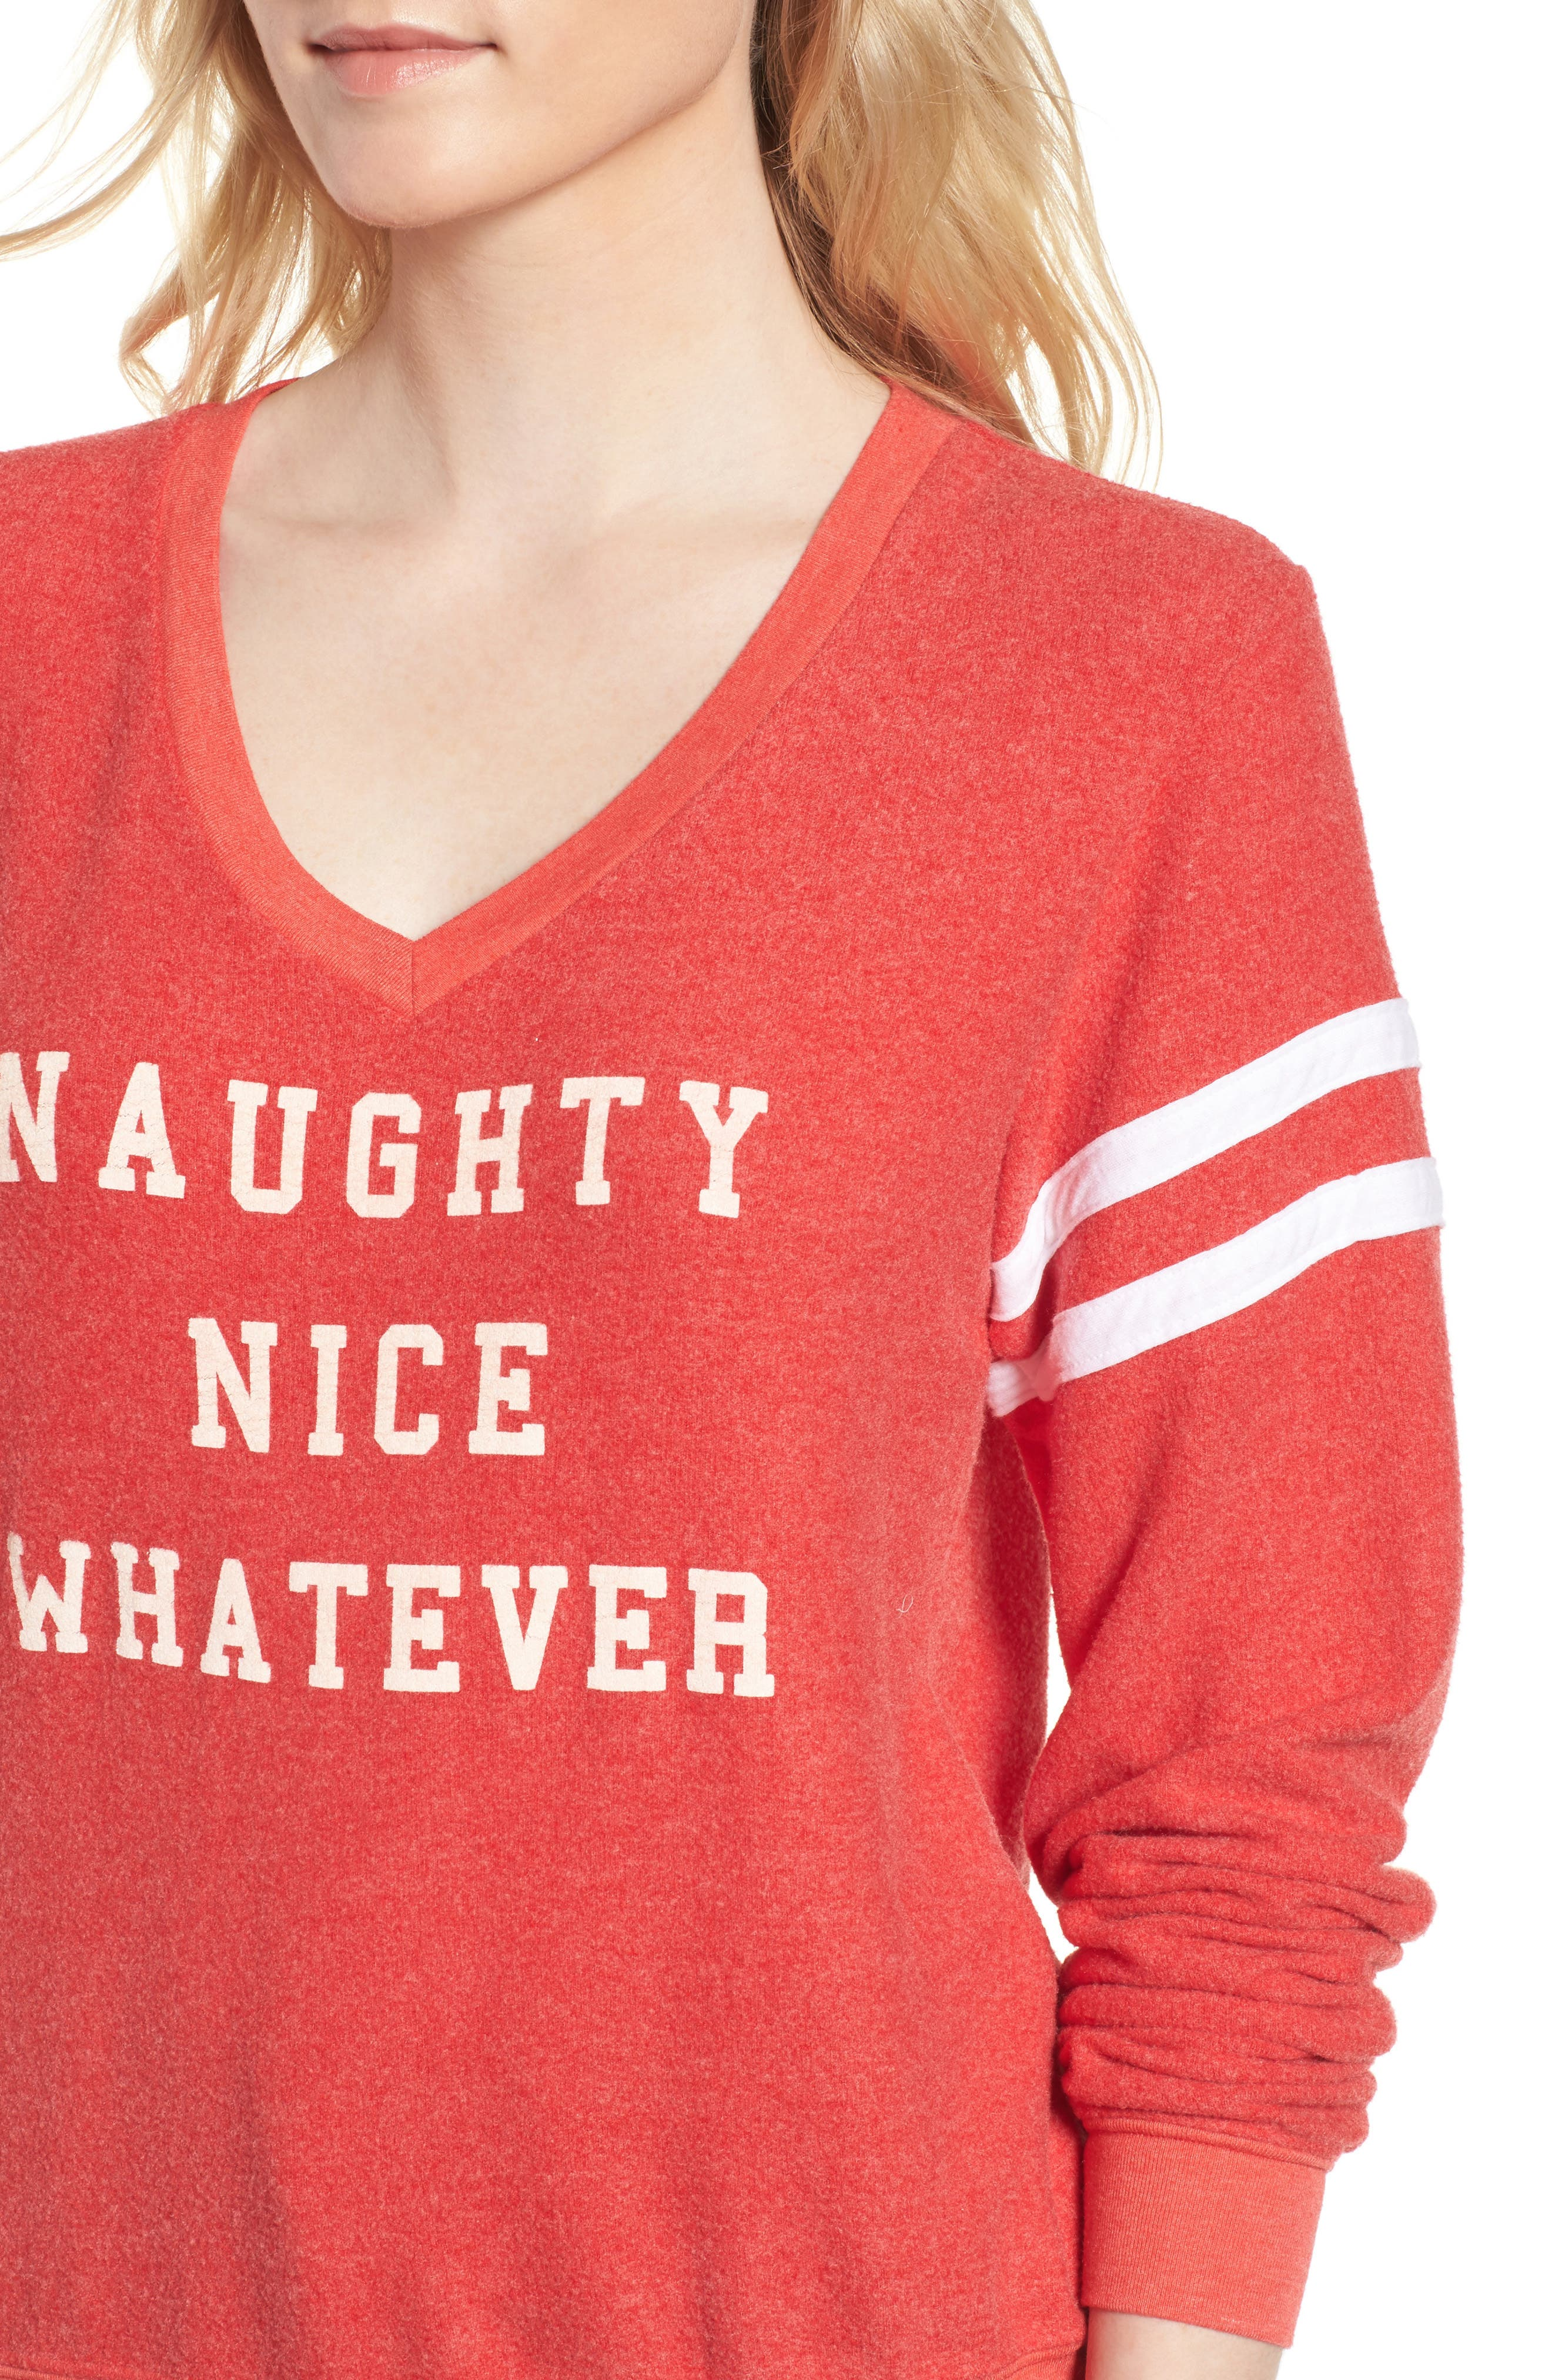 Naughty Nice Whatever Sweatshirt,                             Alternate thumbnail 5, color,                             Red Line